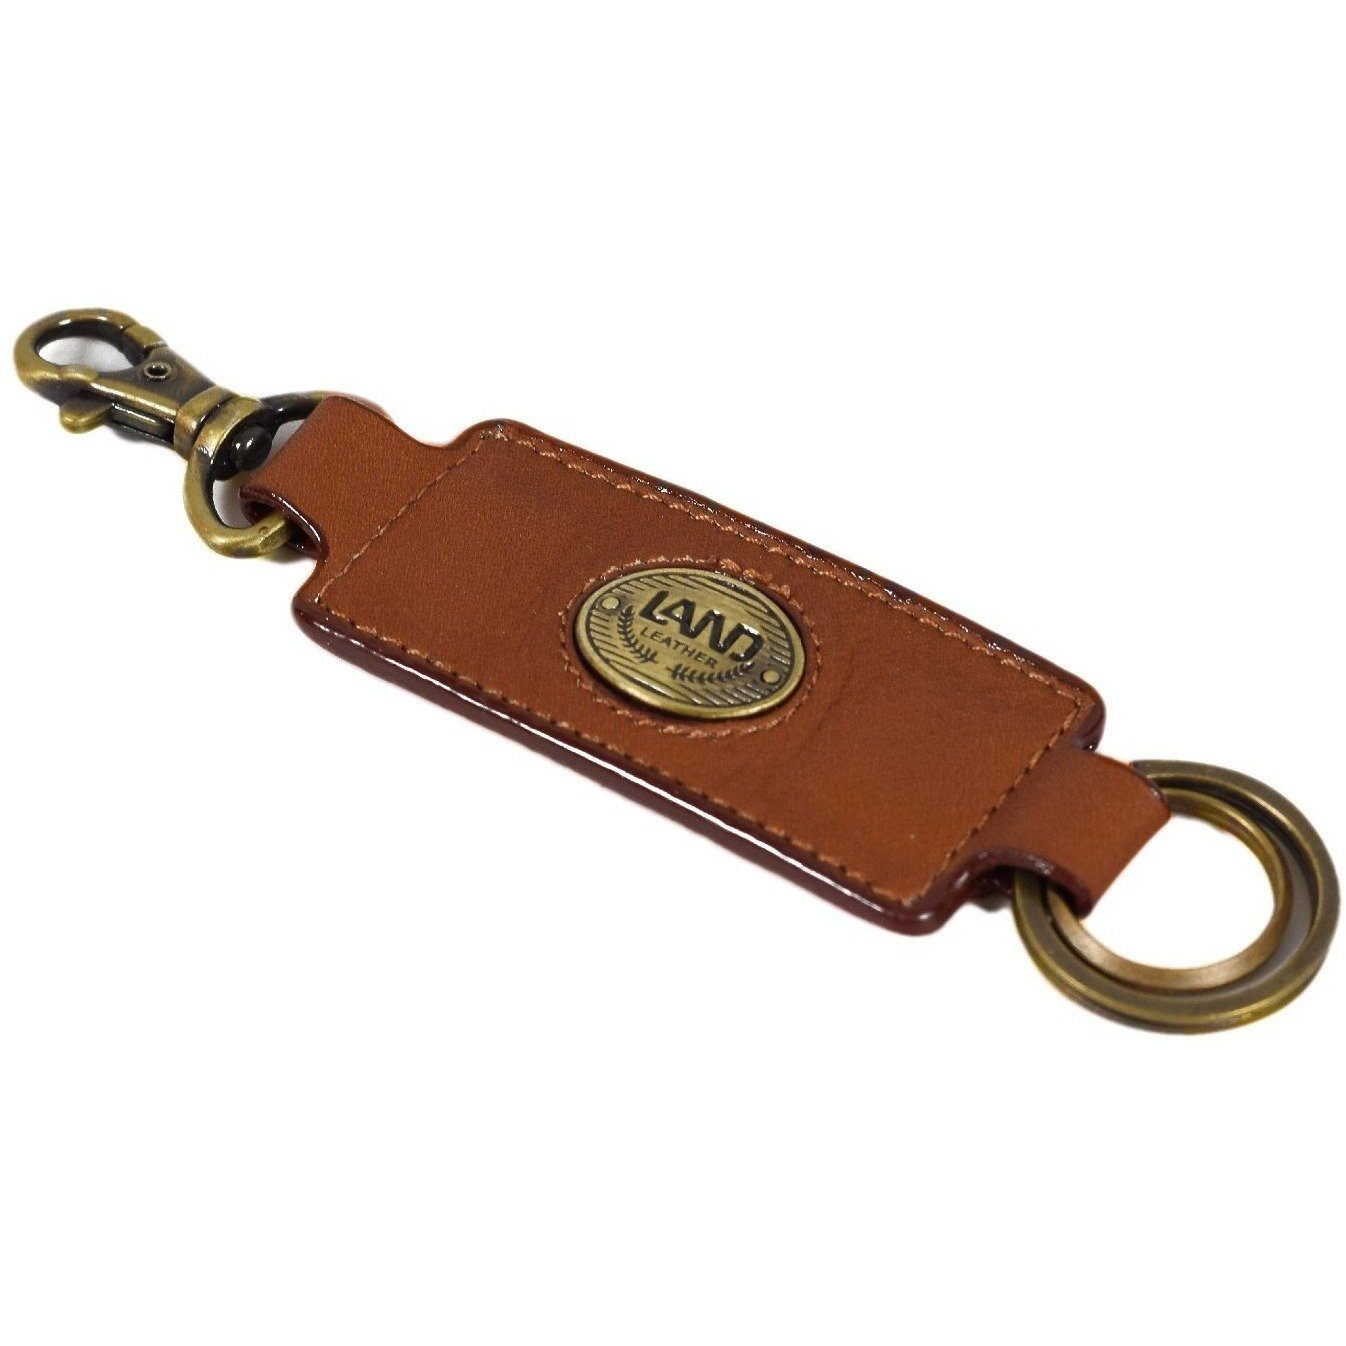 Santa Fe Key Ring, Key Ring | LAND Leather